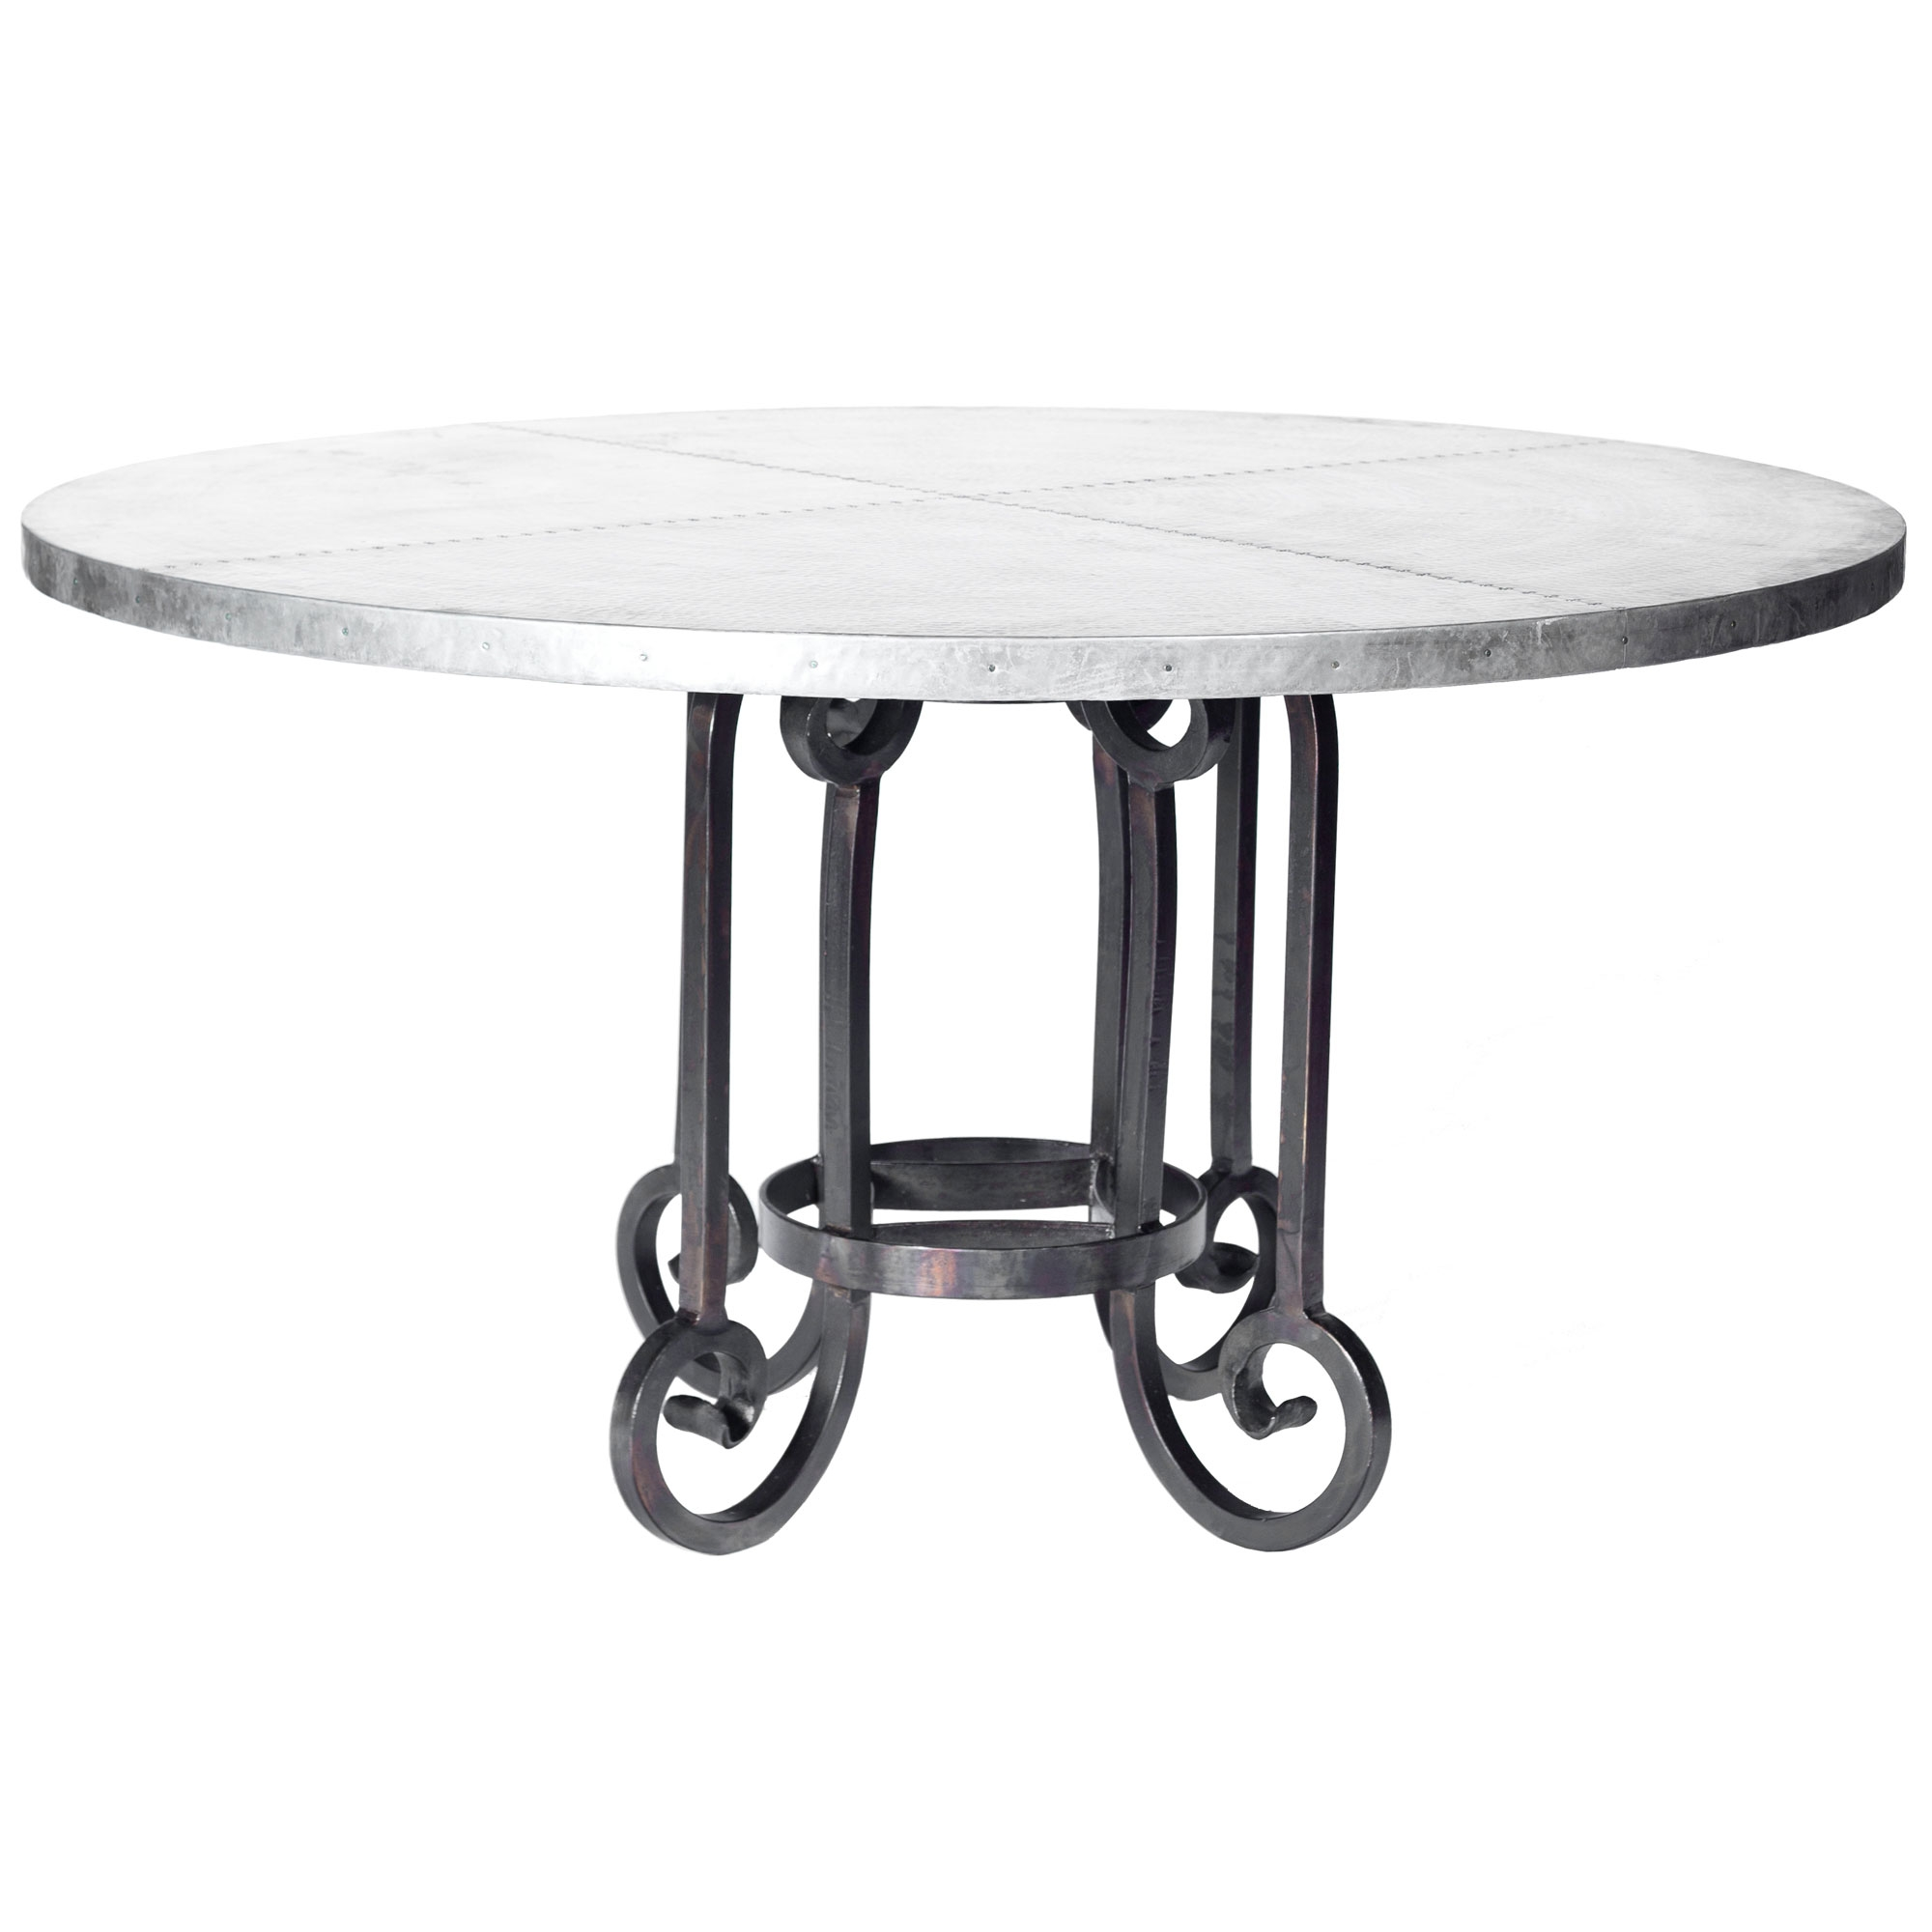 Curled Leg Iron Dining Table with 60quot Round Hammered Zinc Top : TWI PM 2M5 F 549B 2 from timelesswroughtiron.com size 2000 x 2000 jpeg 392kB